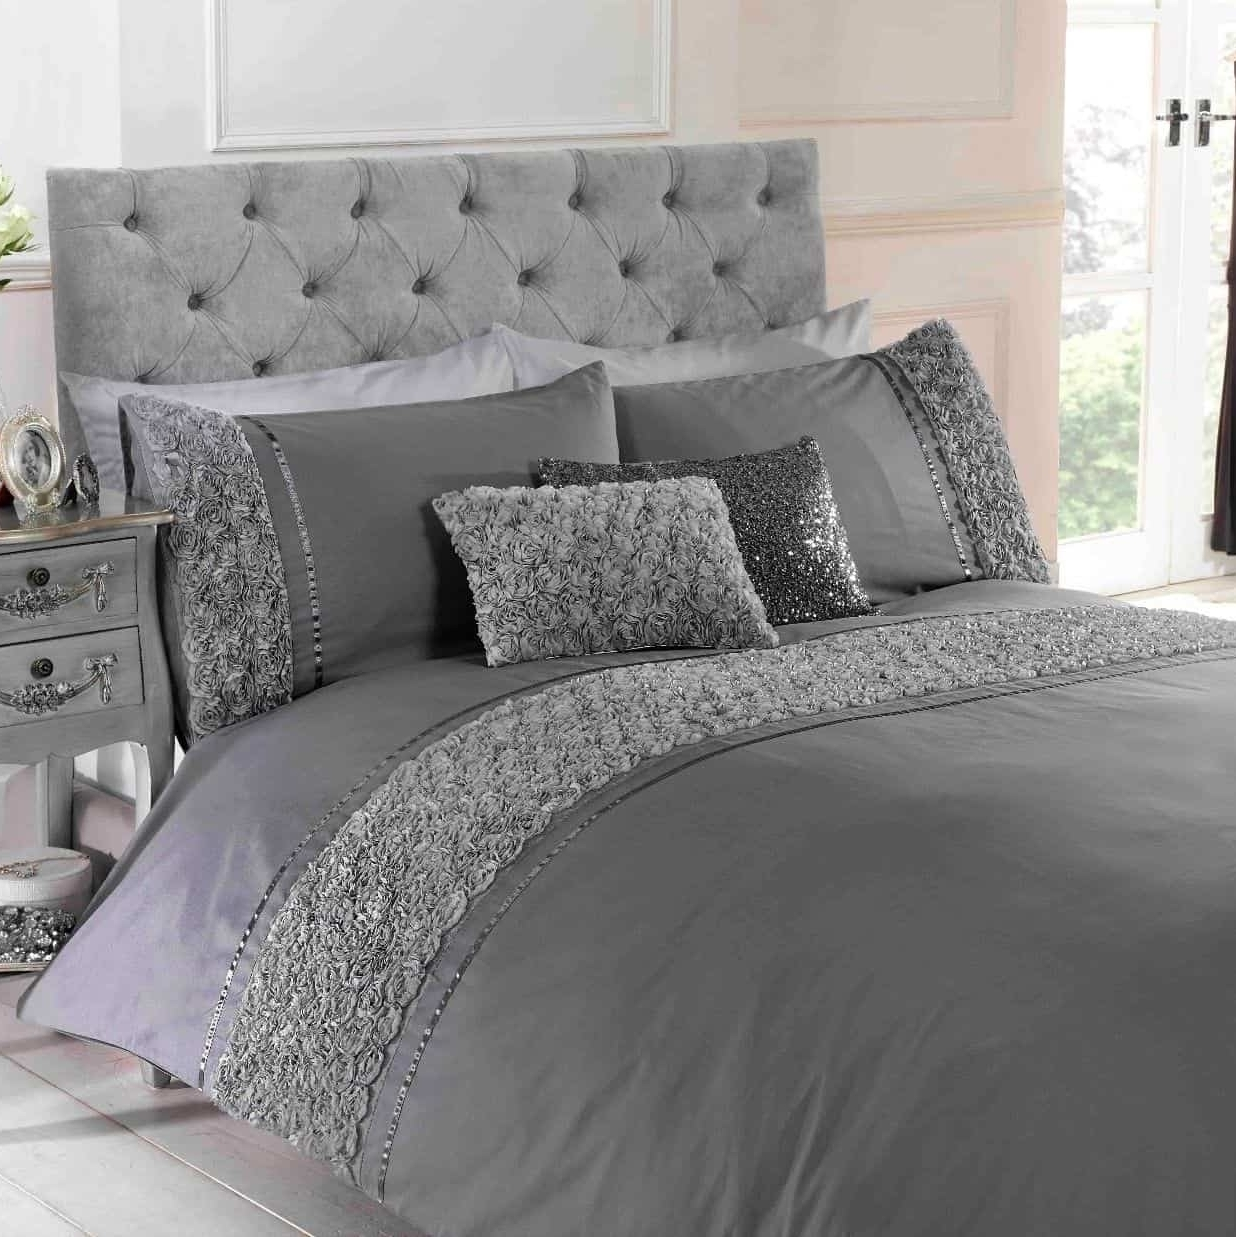 Limoges Rose Floral Chic Ruffle Silver Grey Duvet Cover